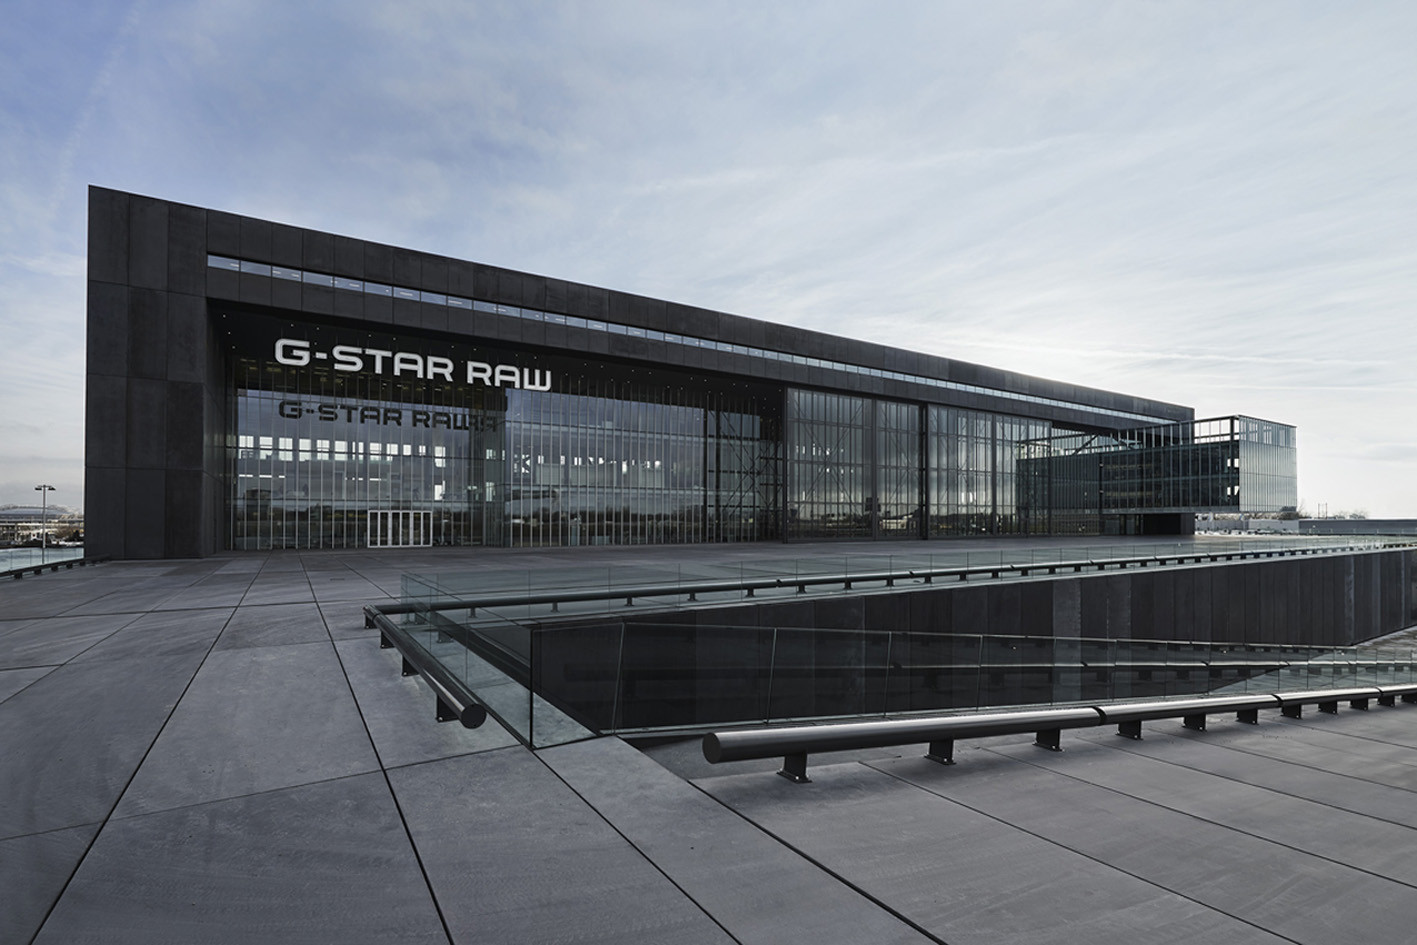 G-Star RAW HQ / OMA, Courtesy of OMA - G-Star